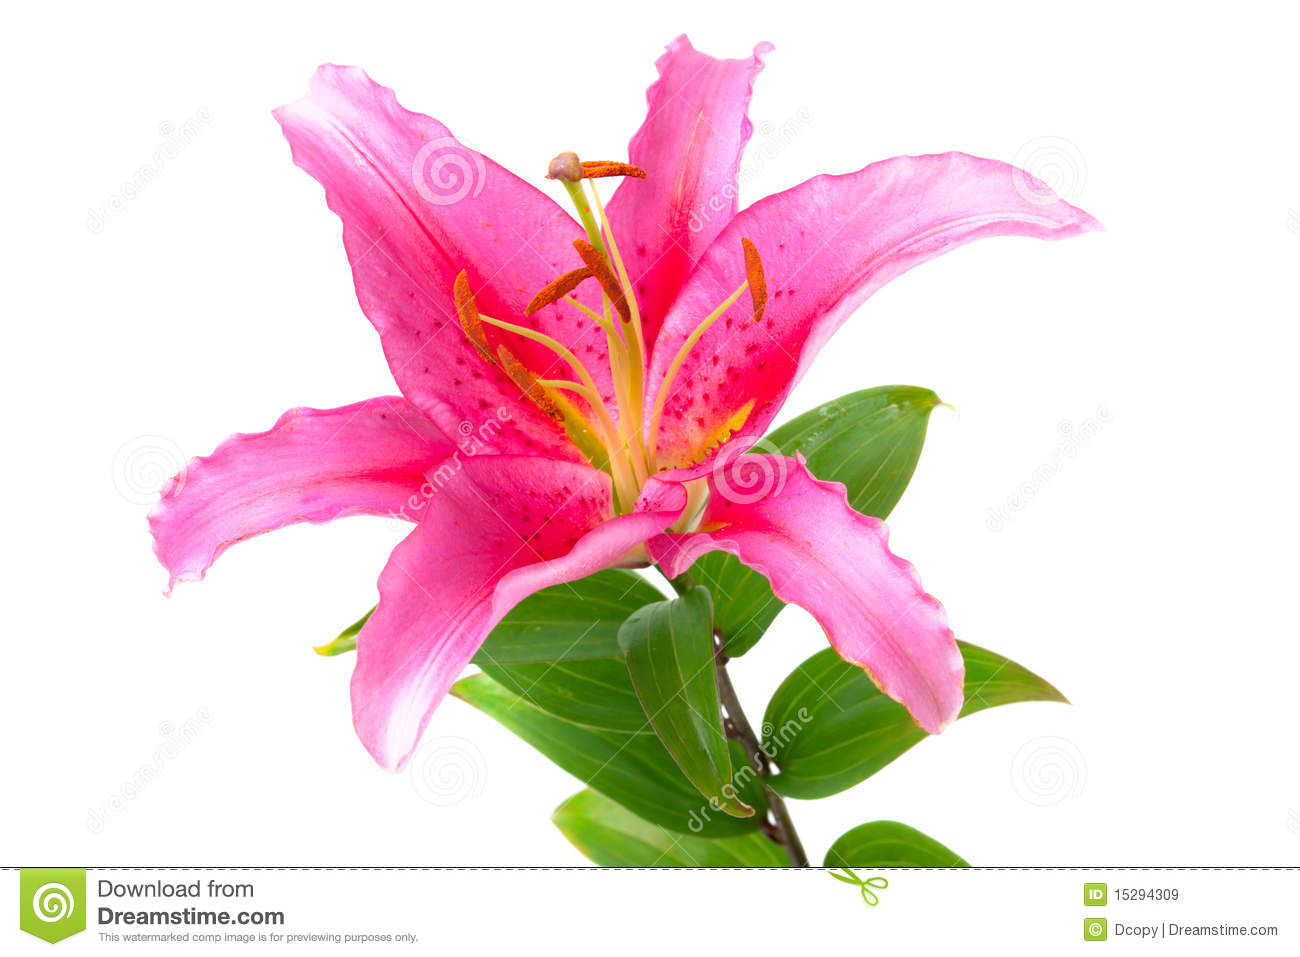 pink lily flower royalty free stock images  image, Beautiful flower